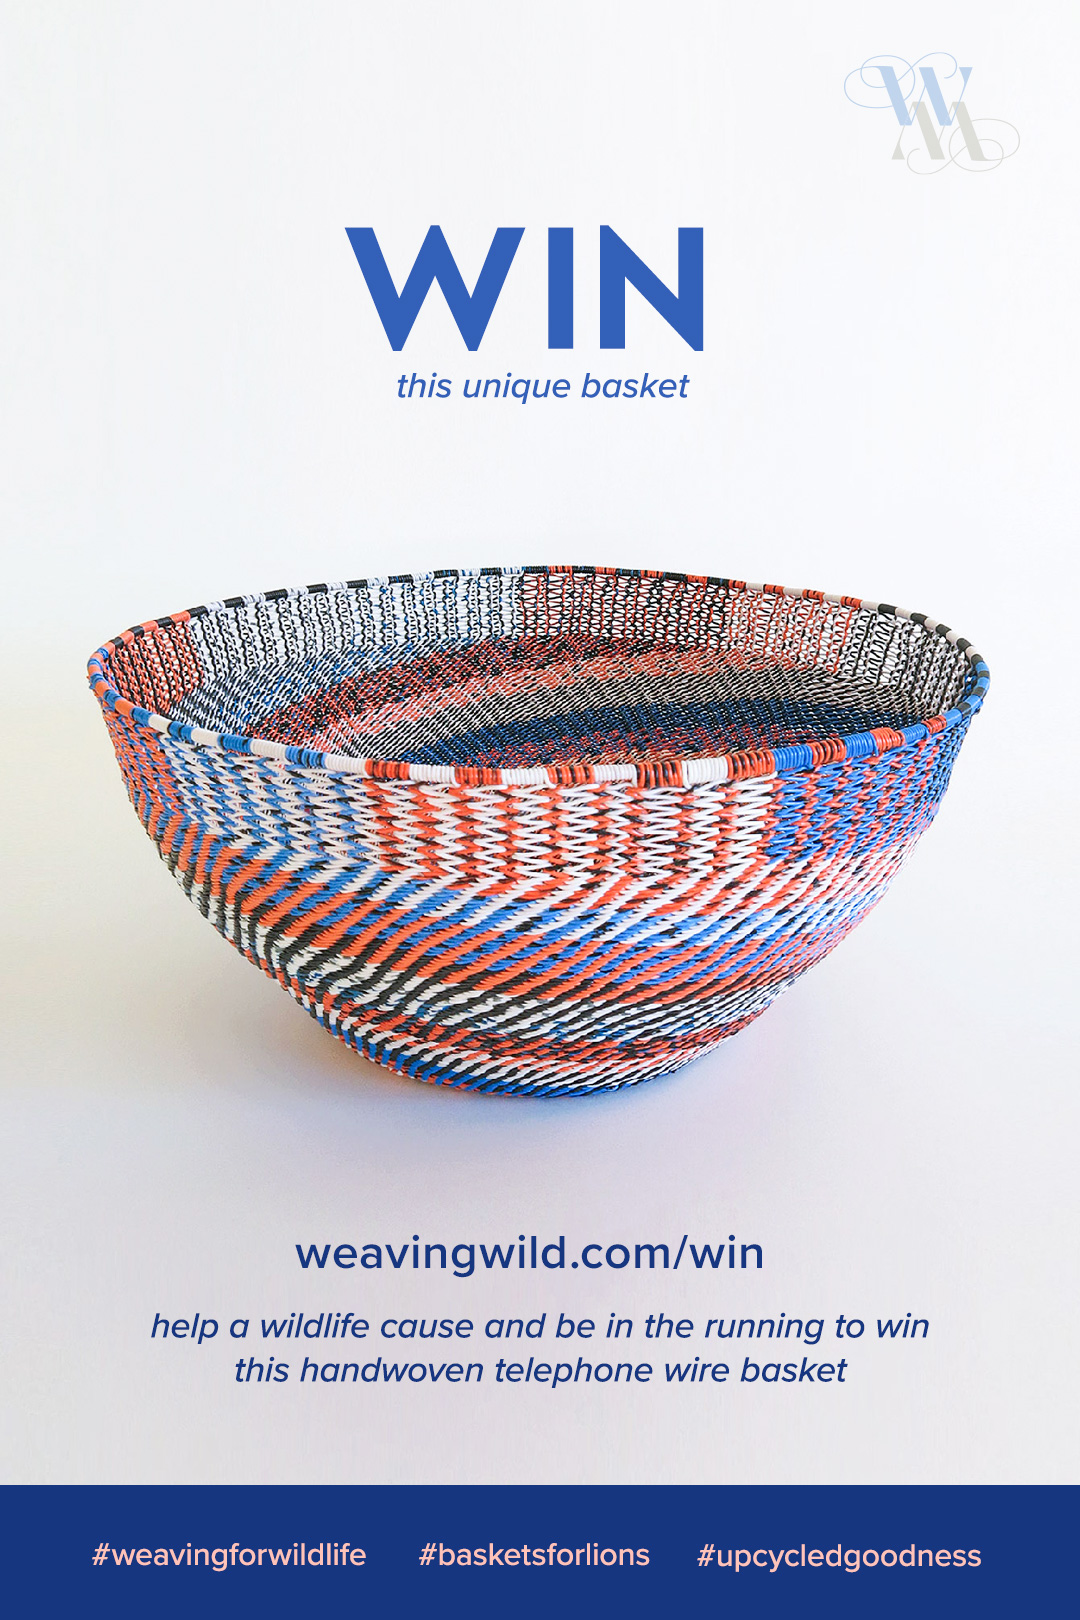 Pin this. Win this basket. Help a wildlife cause and be in the running to win this unique handwoven telephone wire basket.